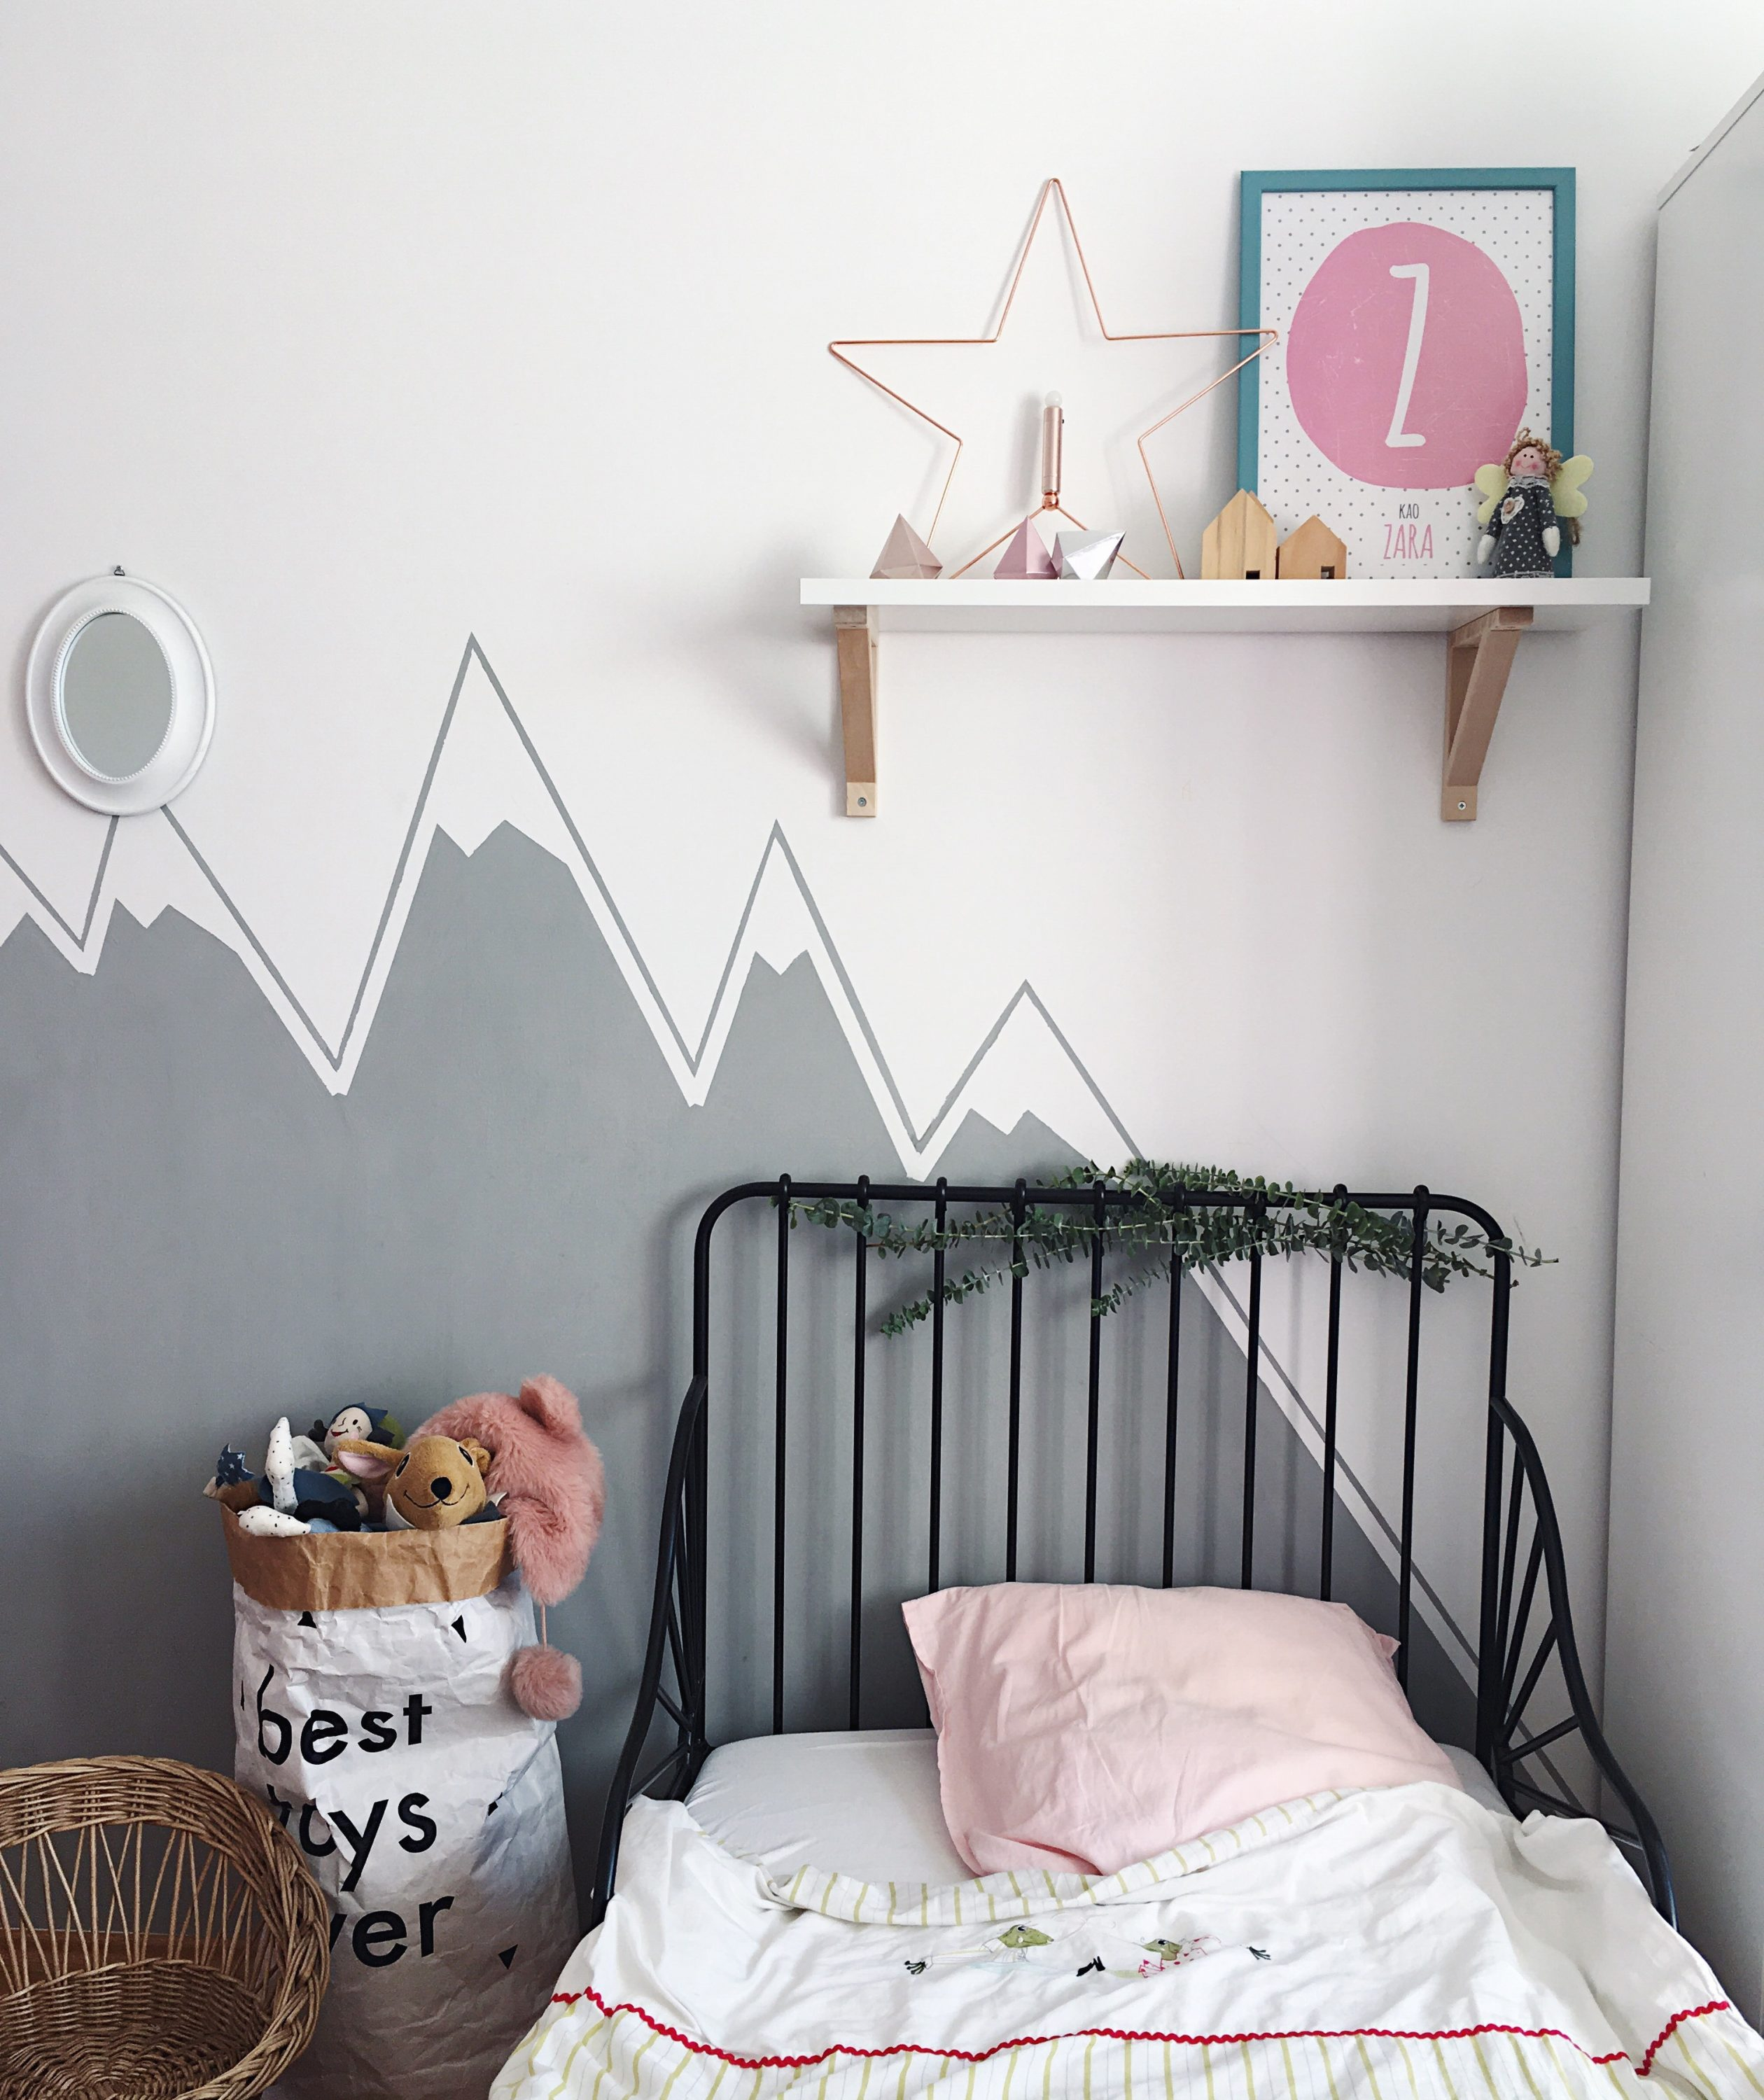 eukaliptus eucalyptus home decor kids room nursery toys kids bed decoration simplicity mountains diy scandinavian stylish more less ines dilemma posters ikea hrvatska dječja soba mama blogerica lifestyle interior kids interior interiors